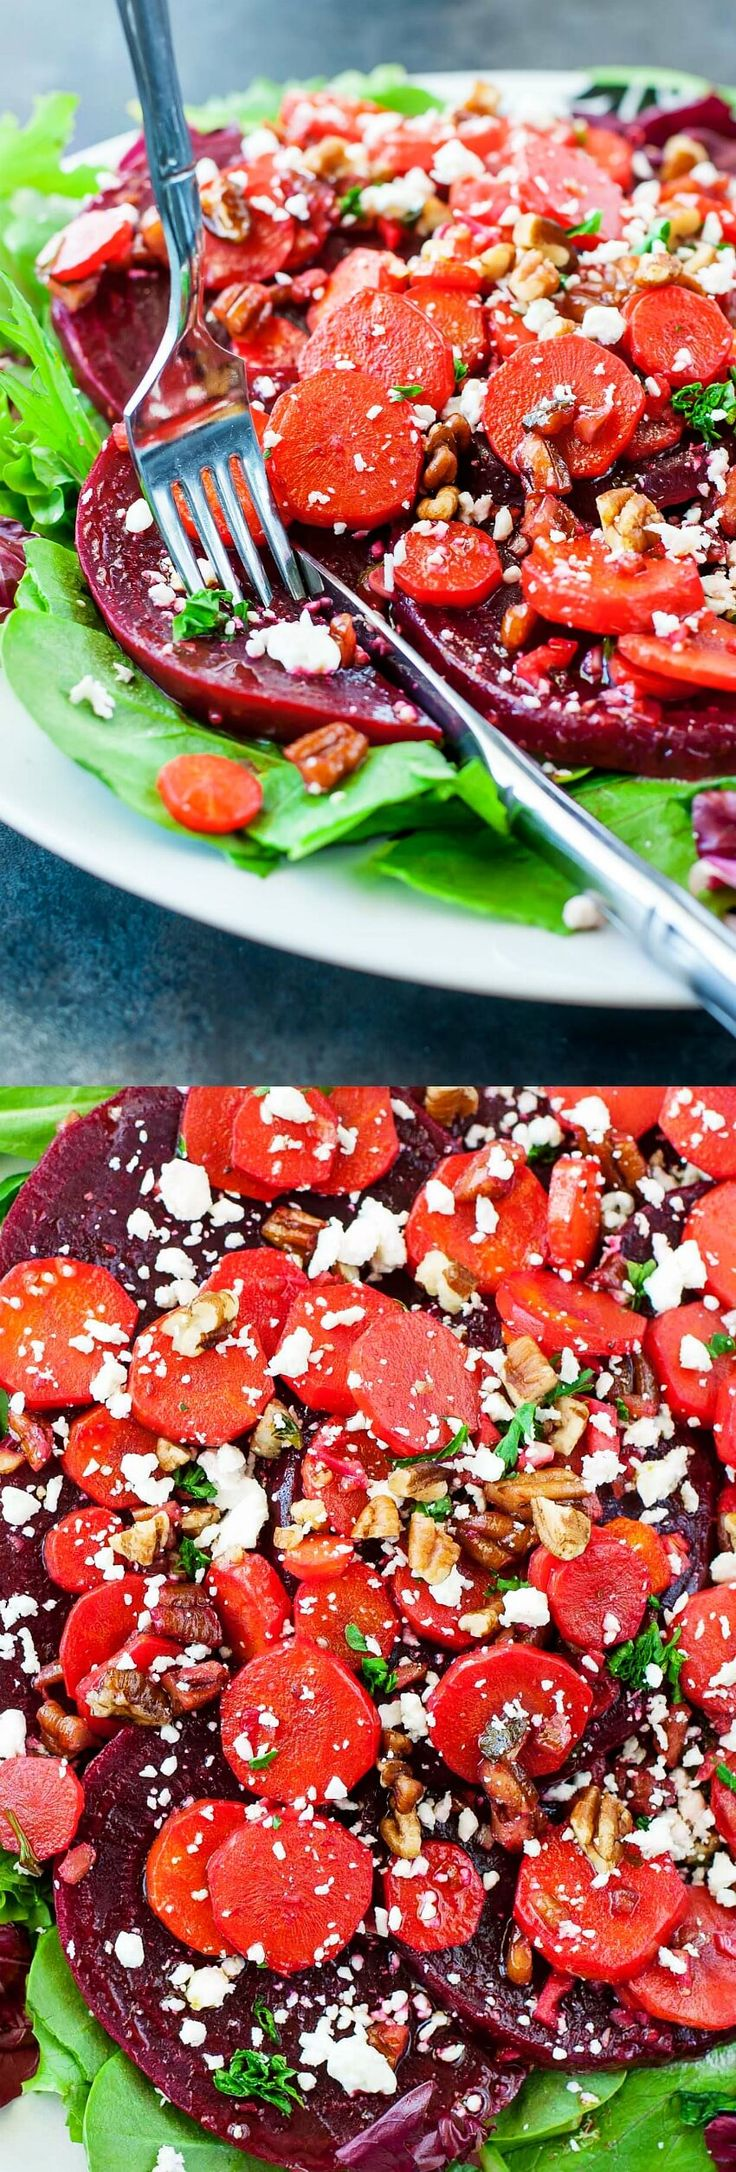 Healthy Warm Carrot Beet Spinach Salad - GF + Vegetarian - Swap out the feta and use clarified butter for a dish that's both paleo friendly and Whole 30 compliant!